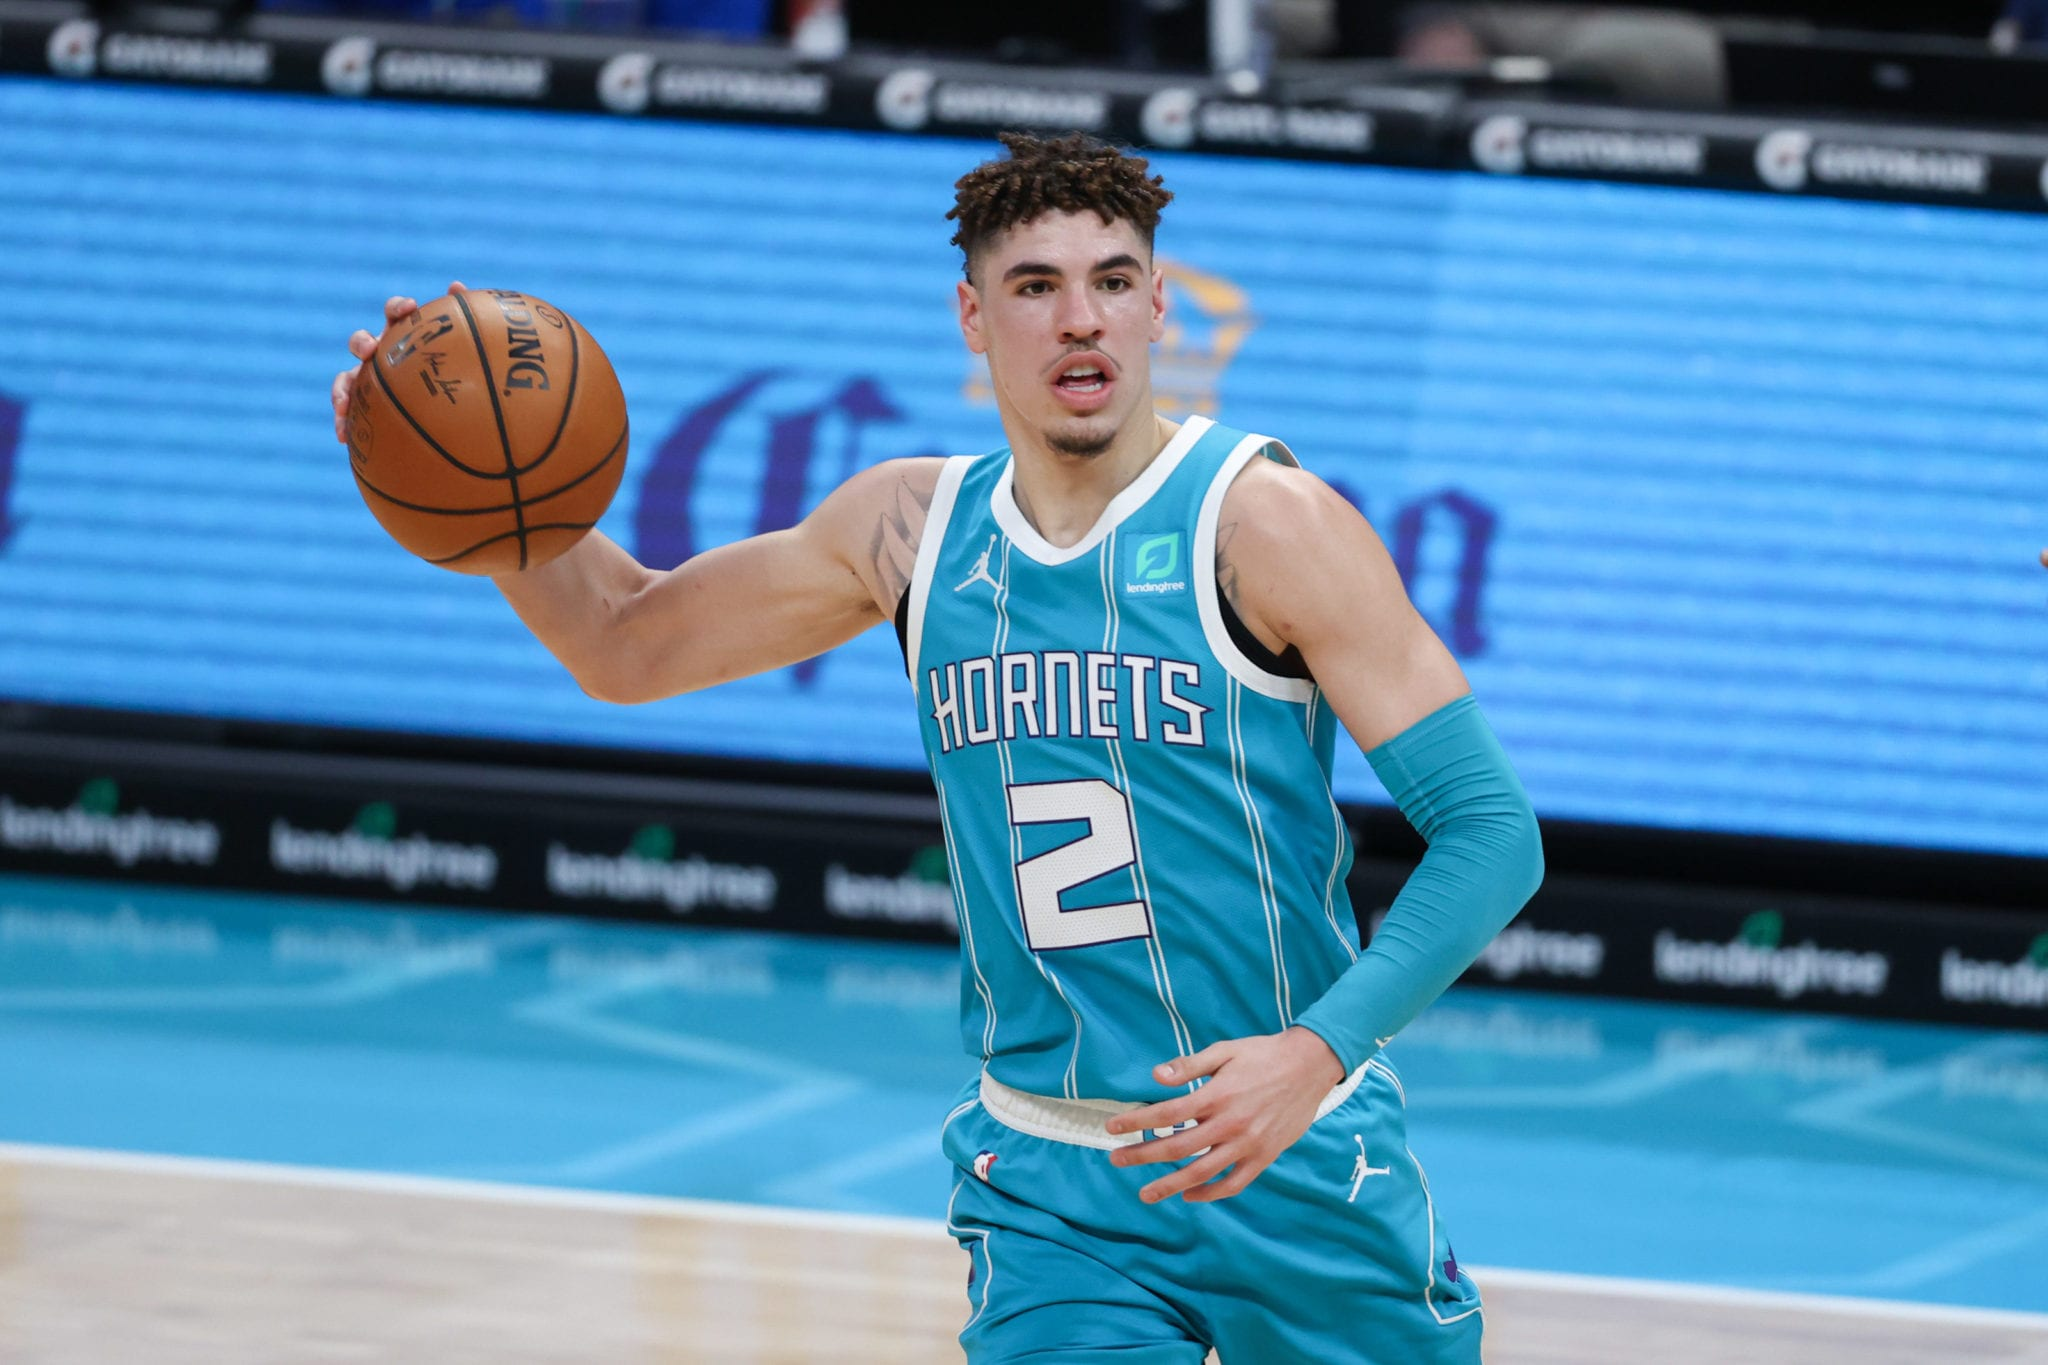 Charlotte Hornets' LaMelo Ball Favorite To Win Rookie of the Year